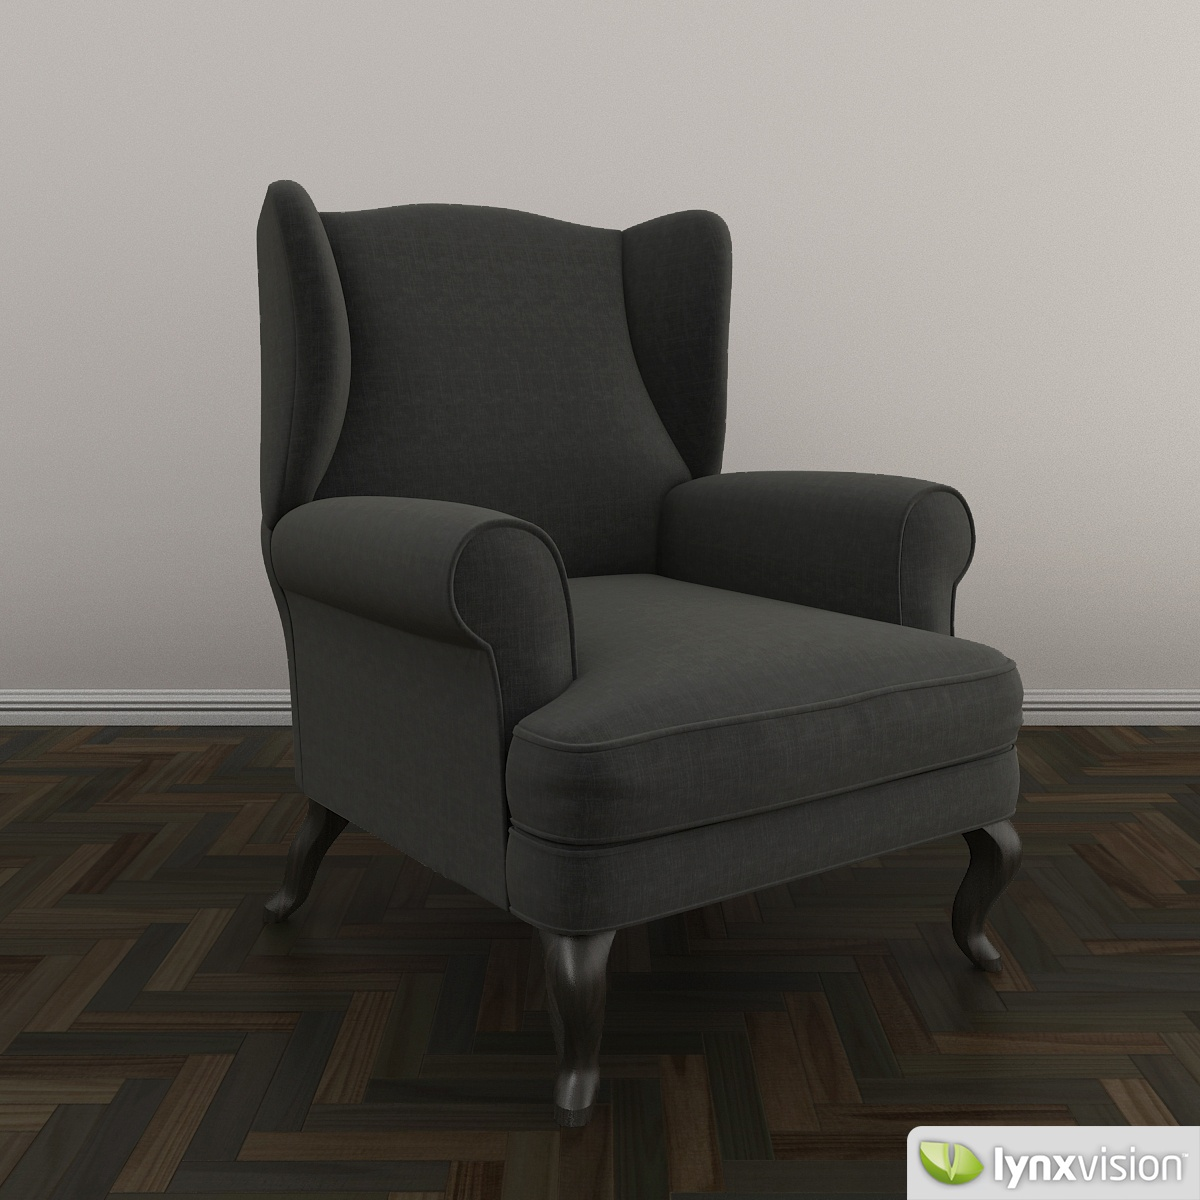 Free upholstered armchair free 3d model max obj fbx for Chair design 3ds max